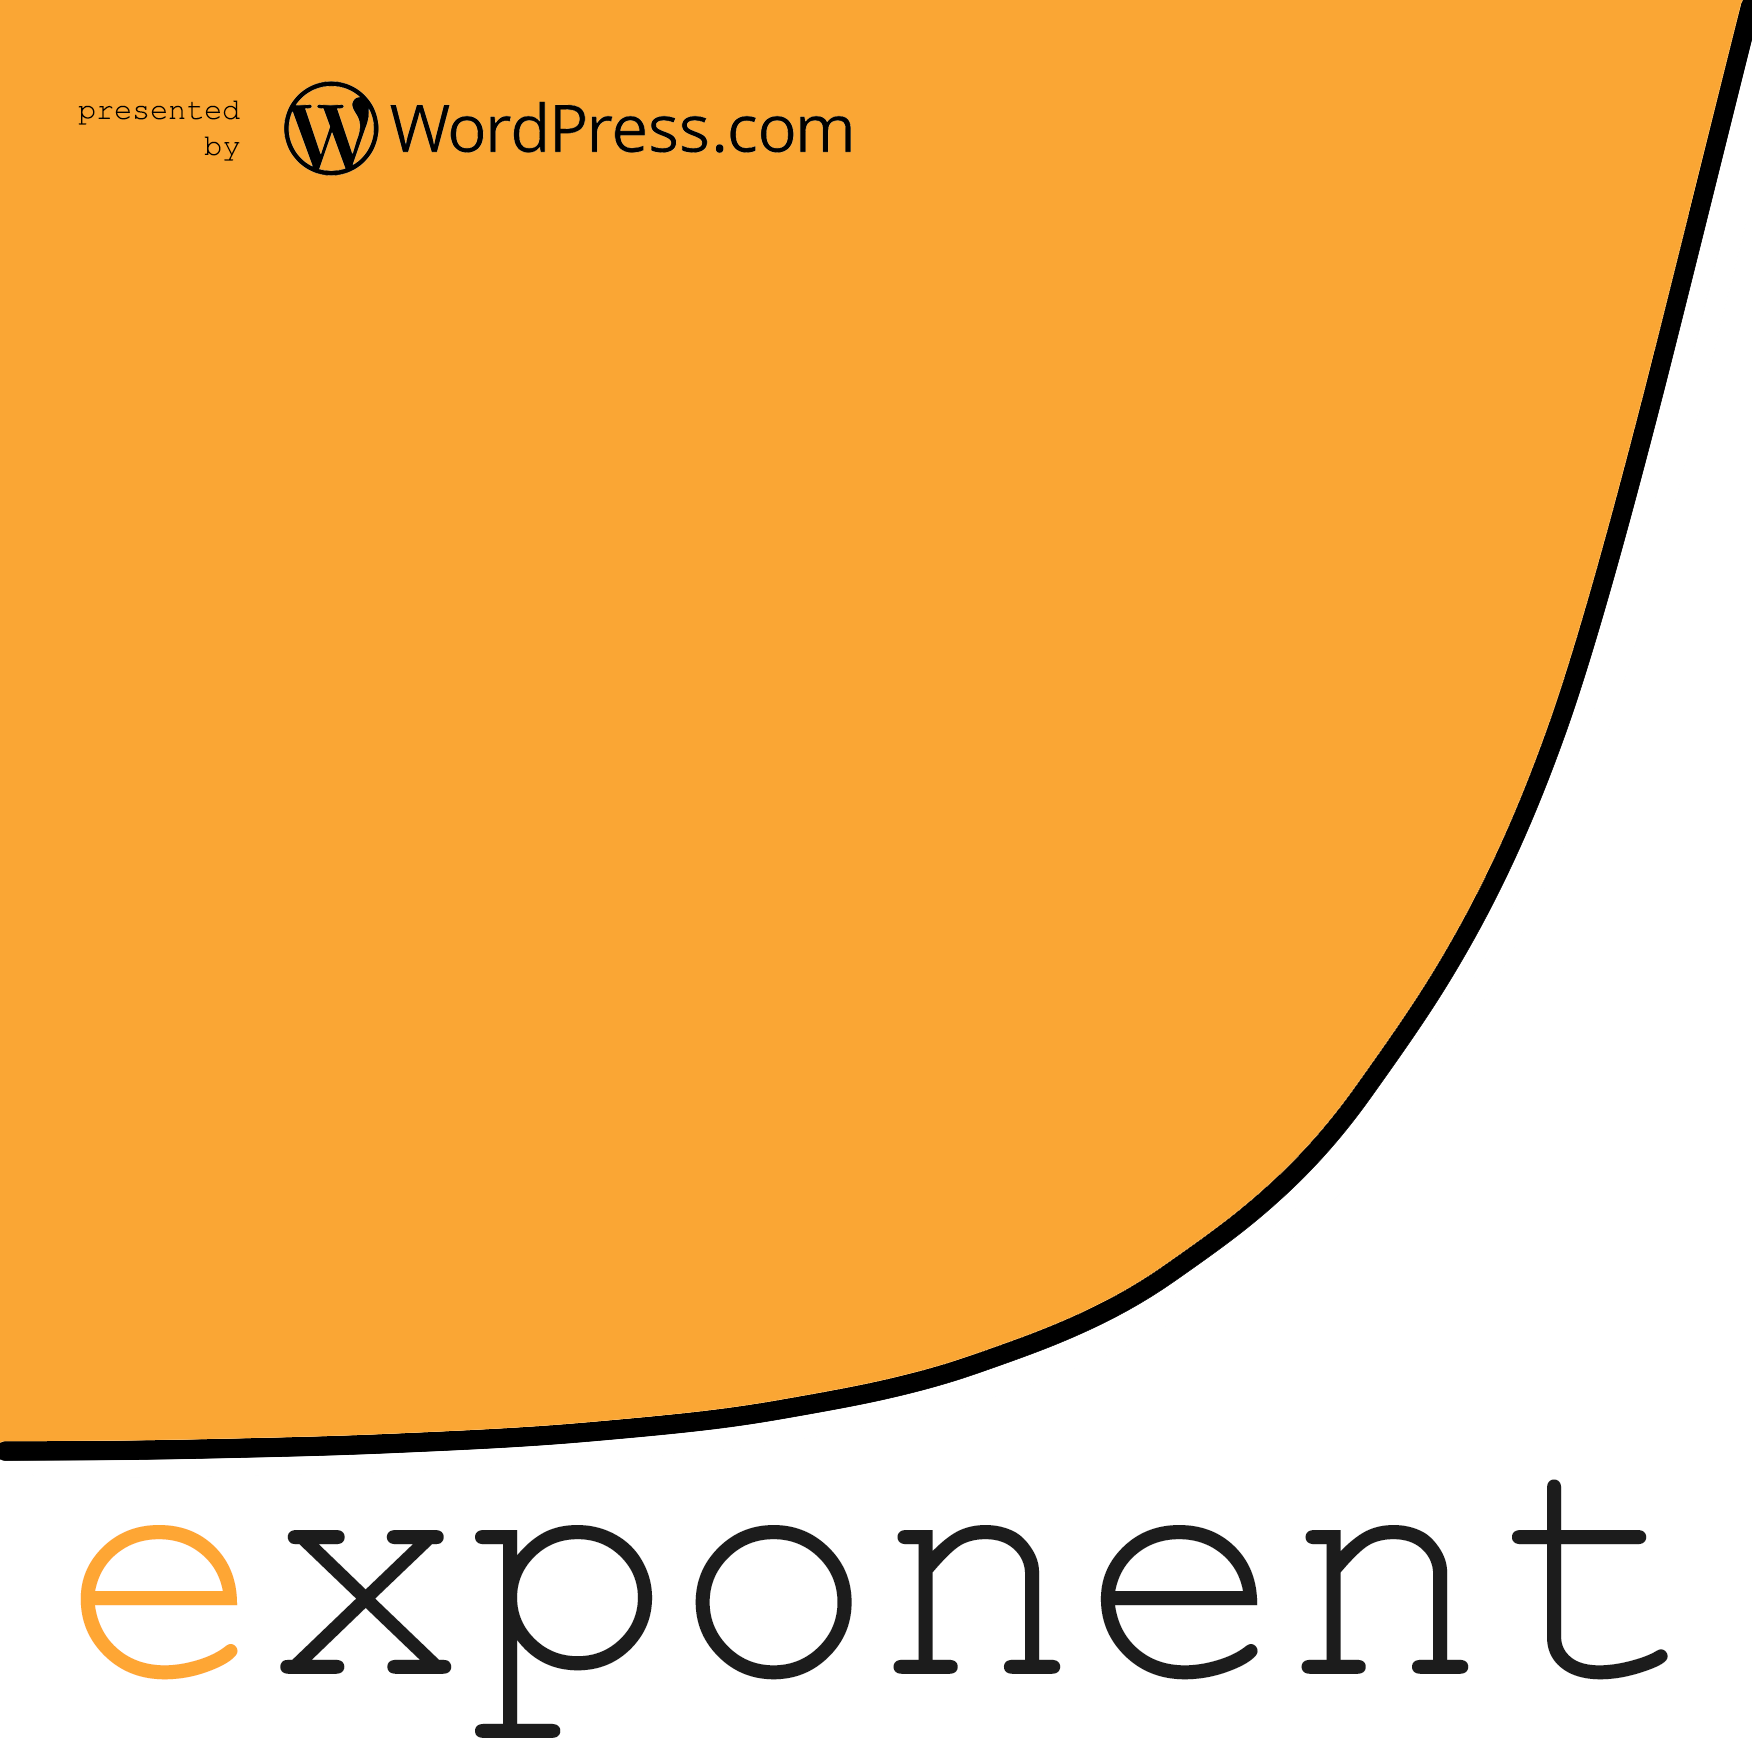 Exponent 3 wp